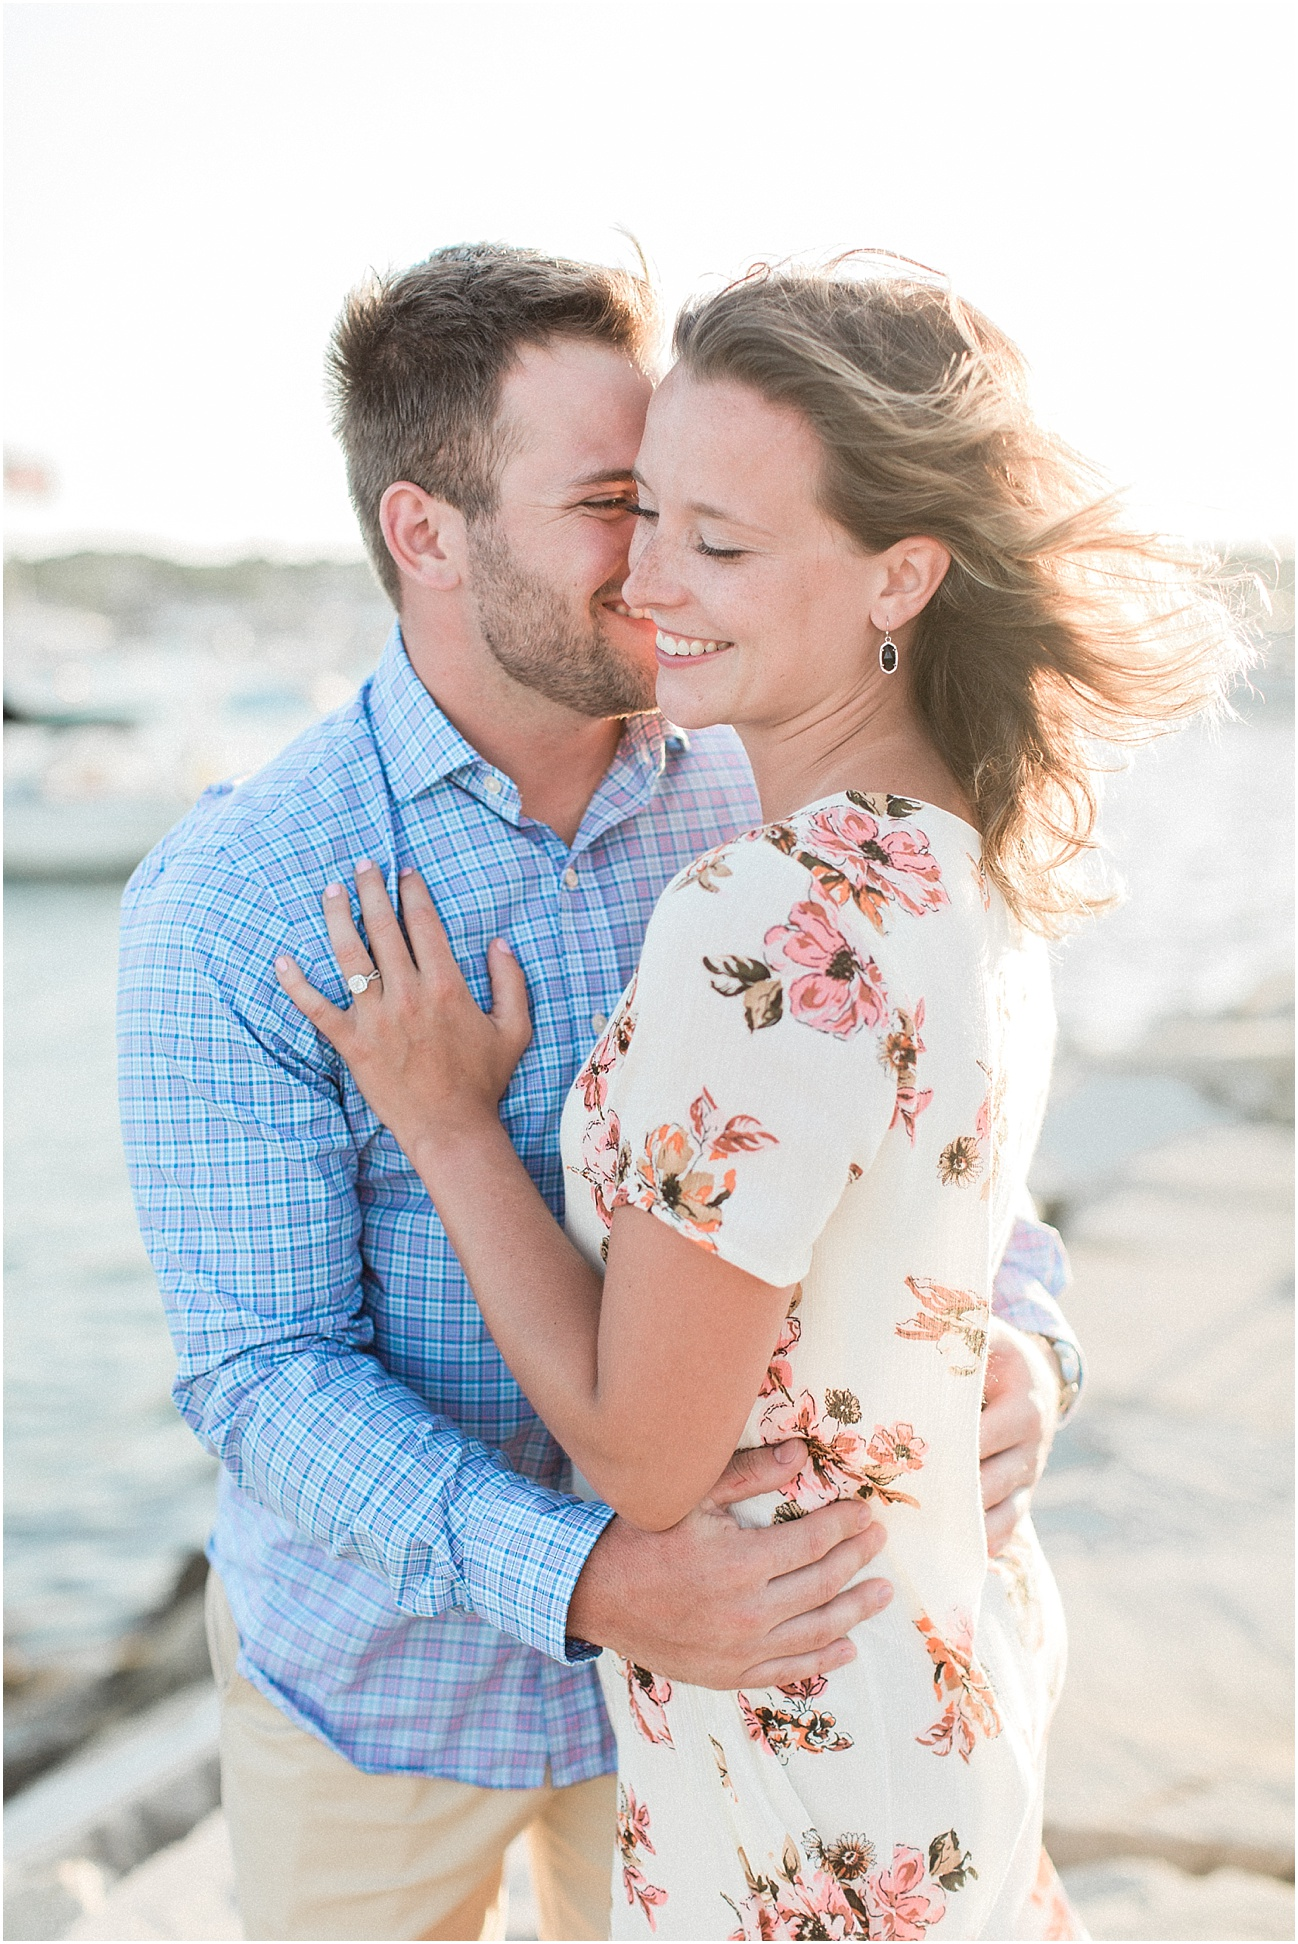 plymouth_jetty_proposal_engagement_cape_cod_boston_wedding_photographer_meredith_jane_photography_photo_0522.jpg